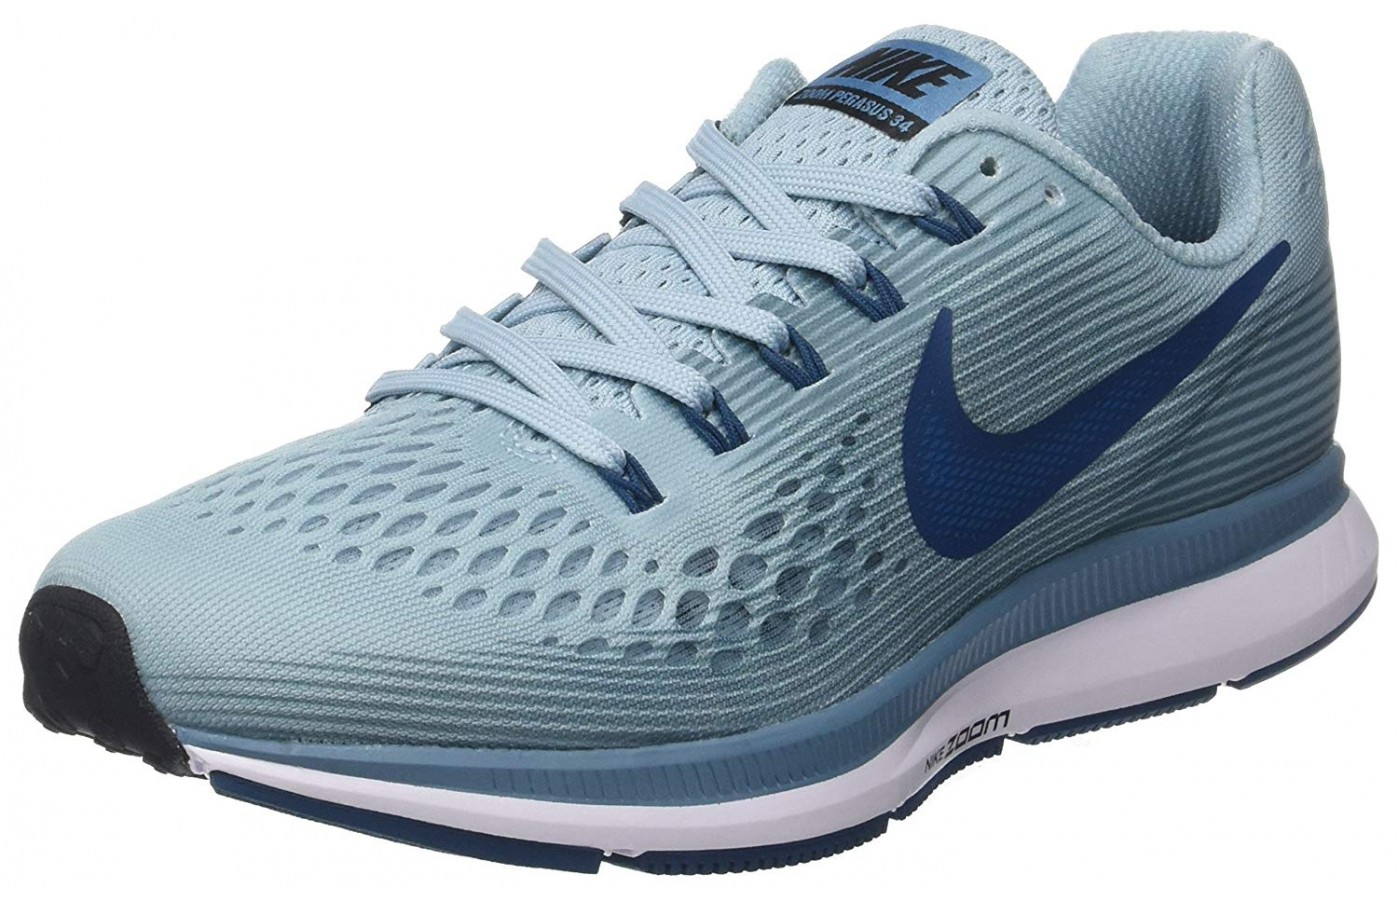 The Nike Air Bellas are available in a variety of colors.